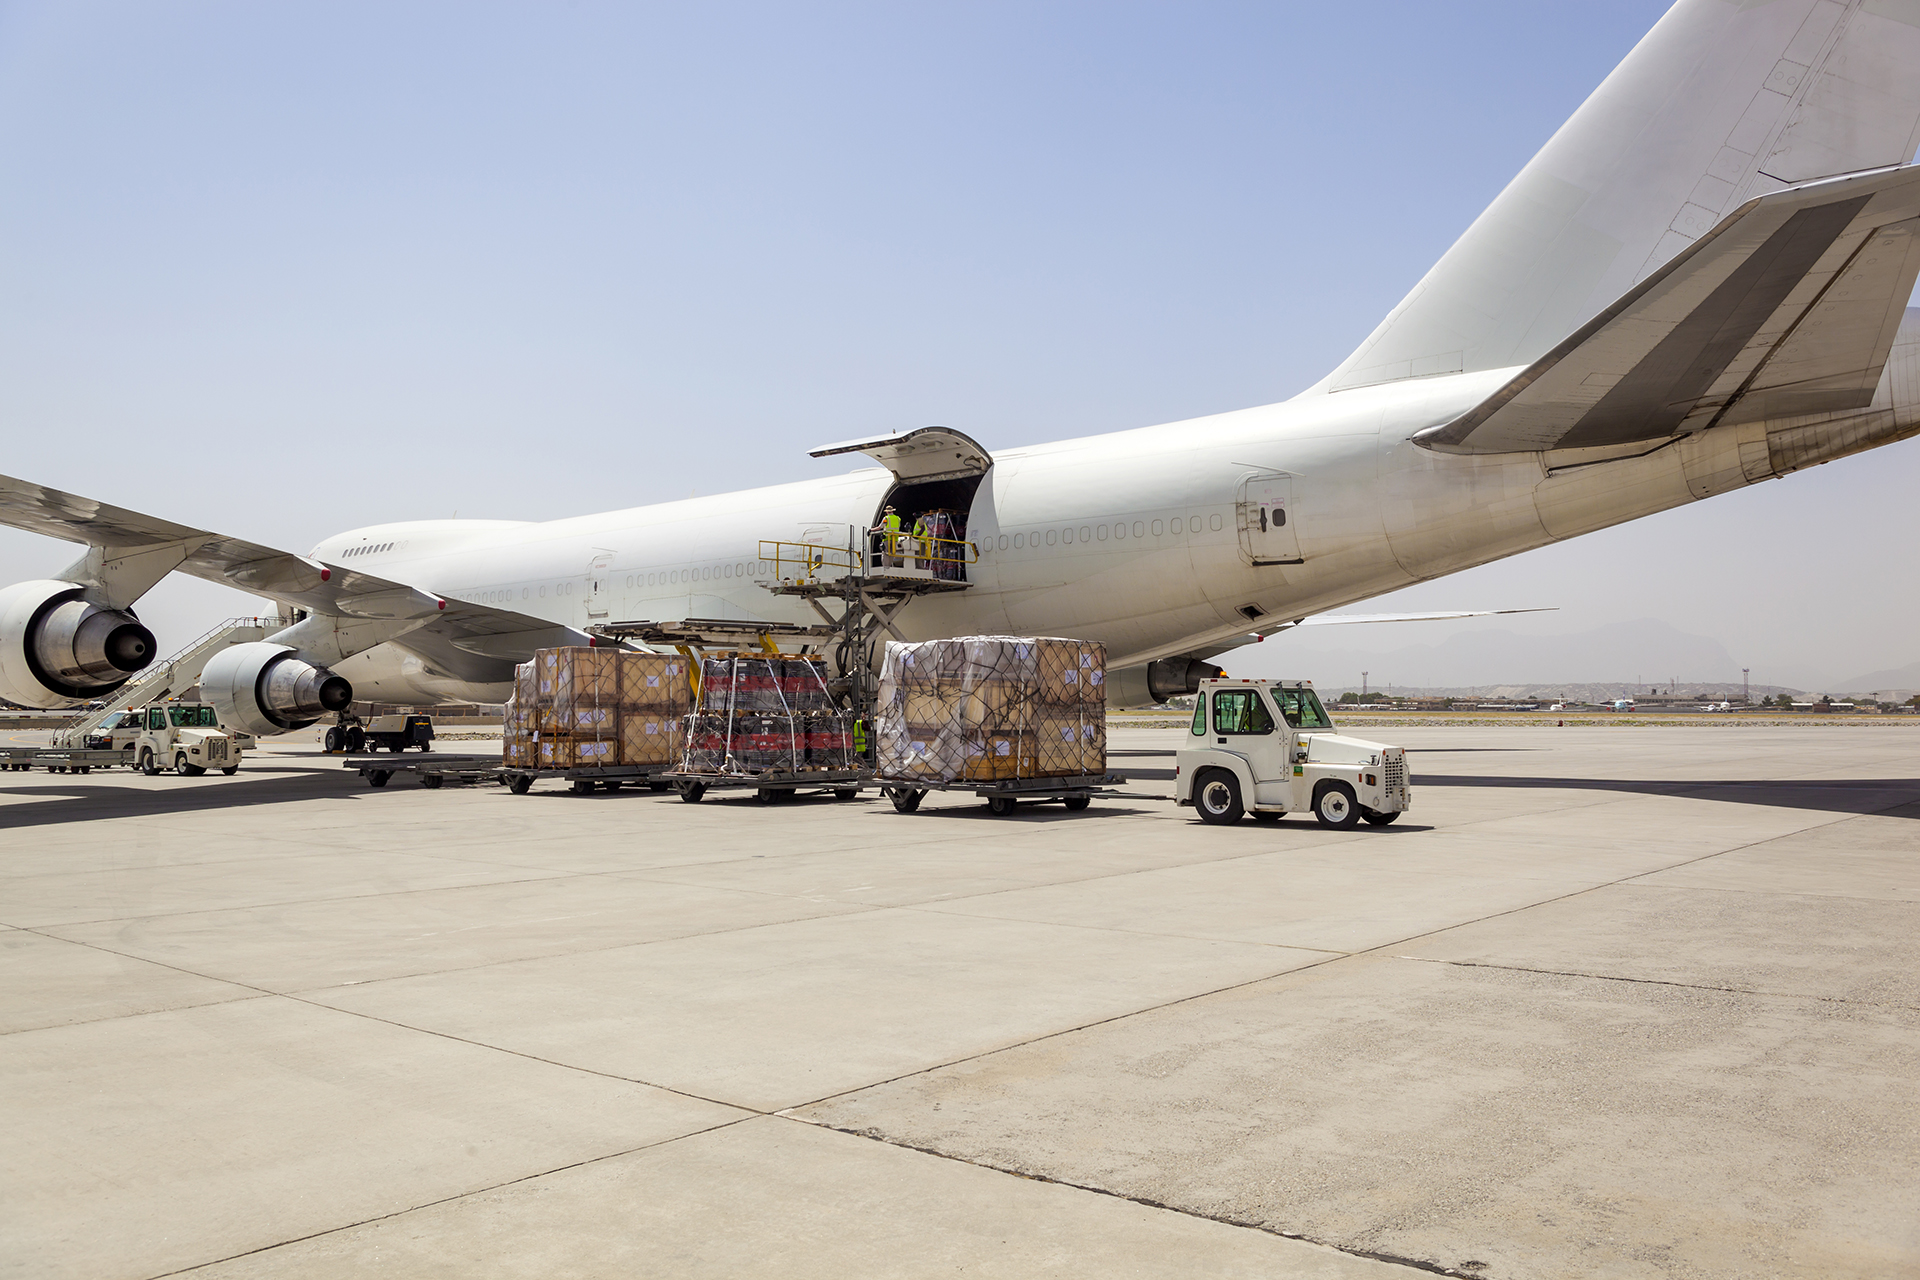 PayCargo announced a global agreement with IATA to jointly offer The IATA-PayCargo System